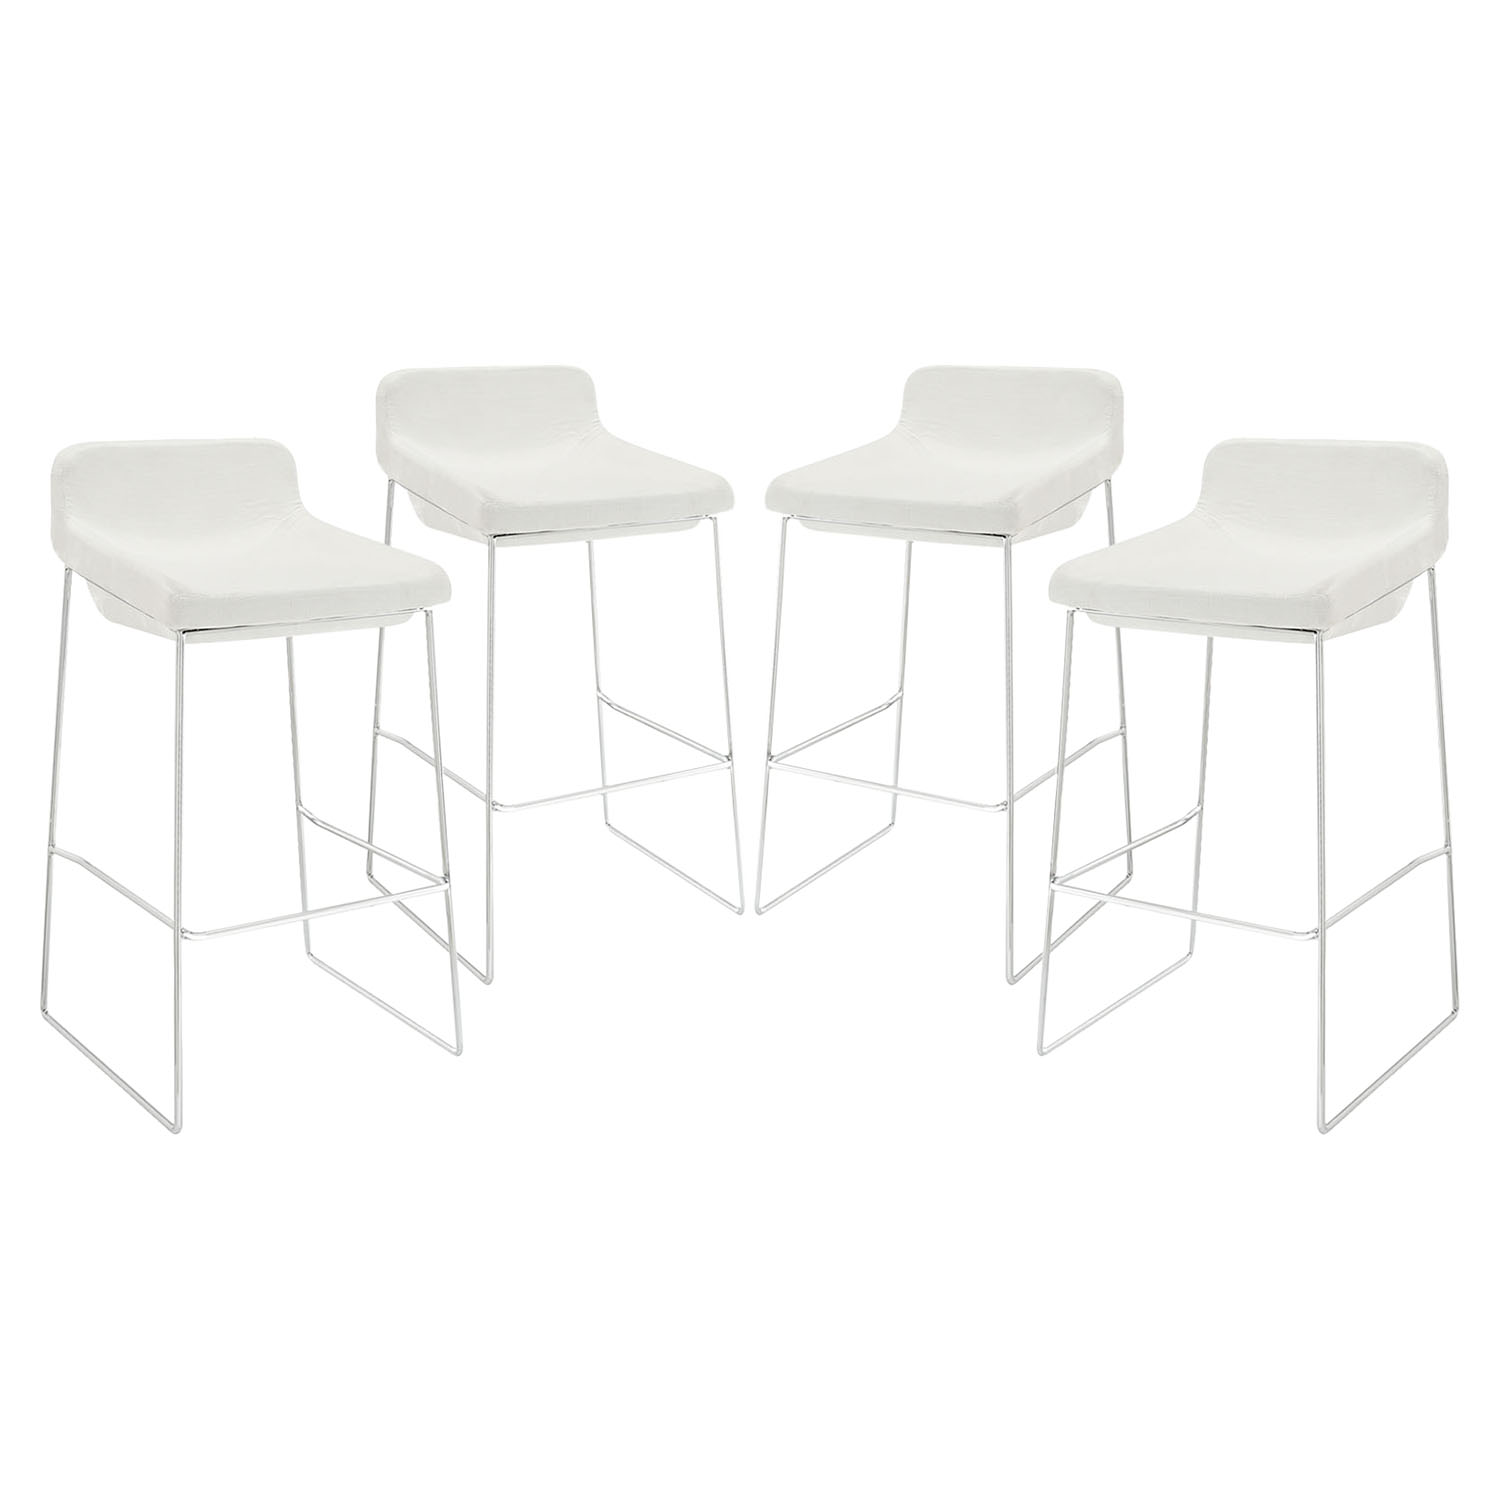 Garner Upholstery Bar Stool - White (Set of 4)